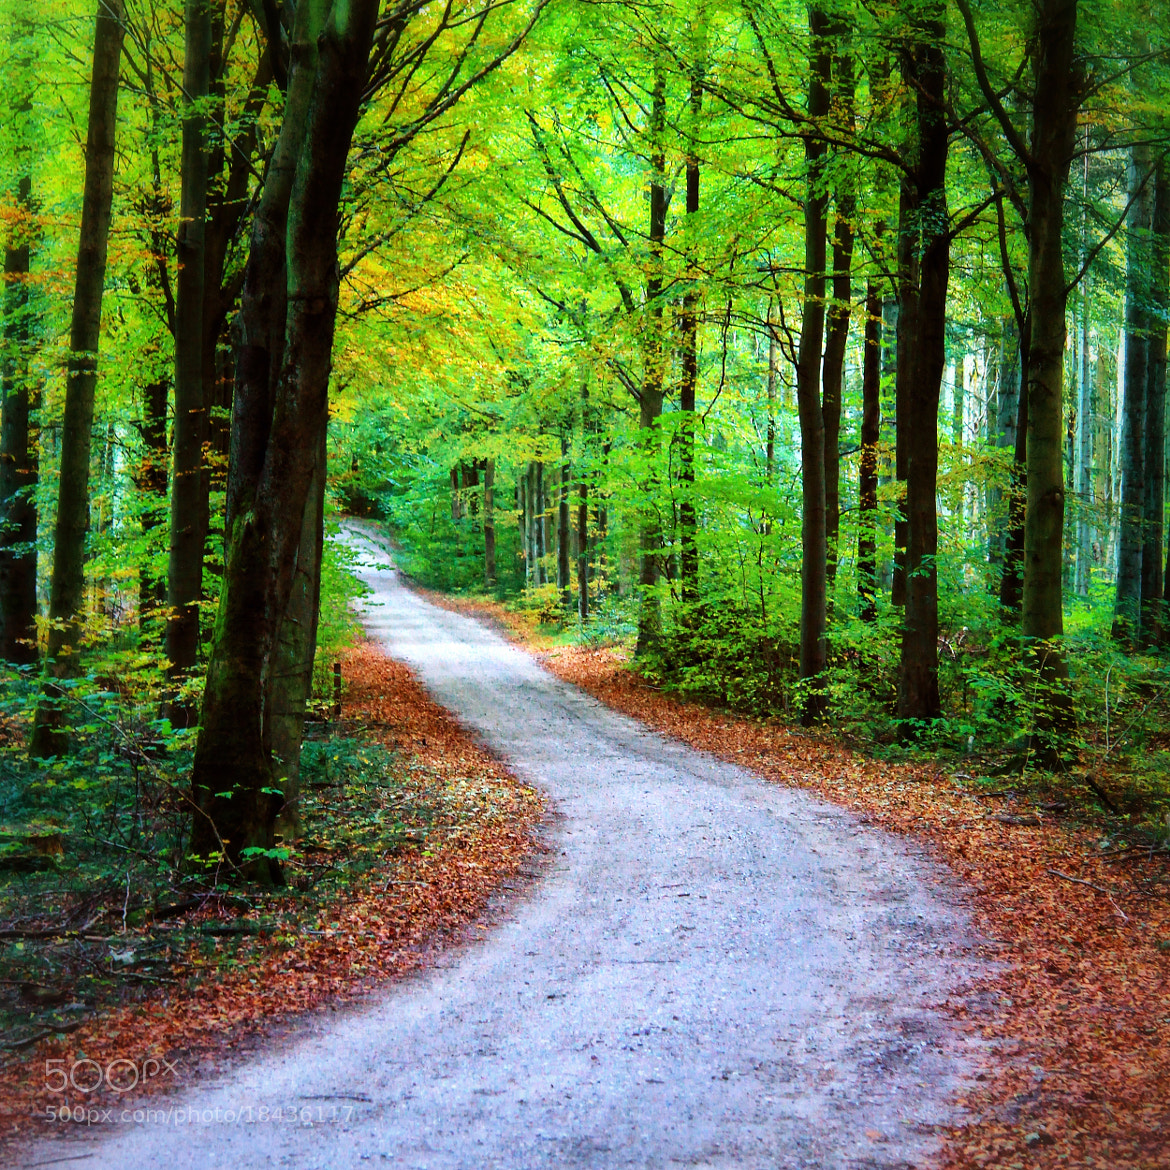 Photograph Forrest road by Joost Lagerweij on 500px